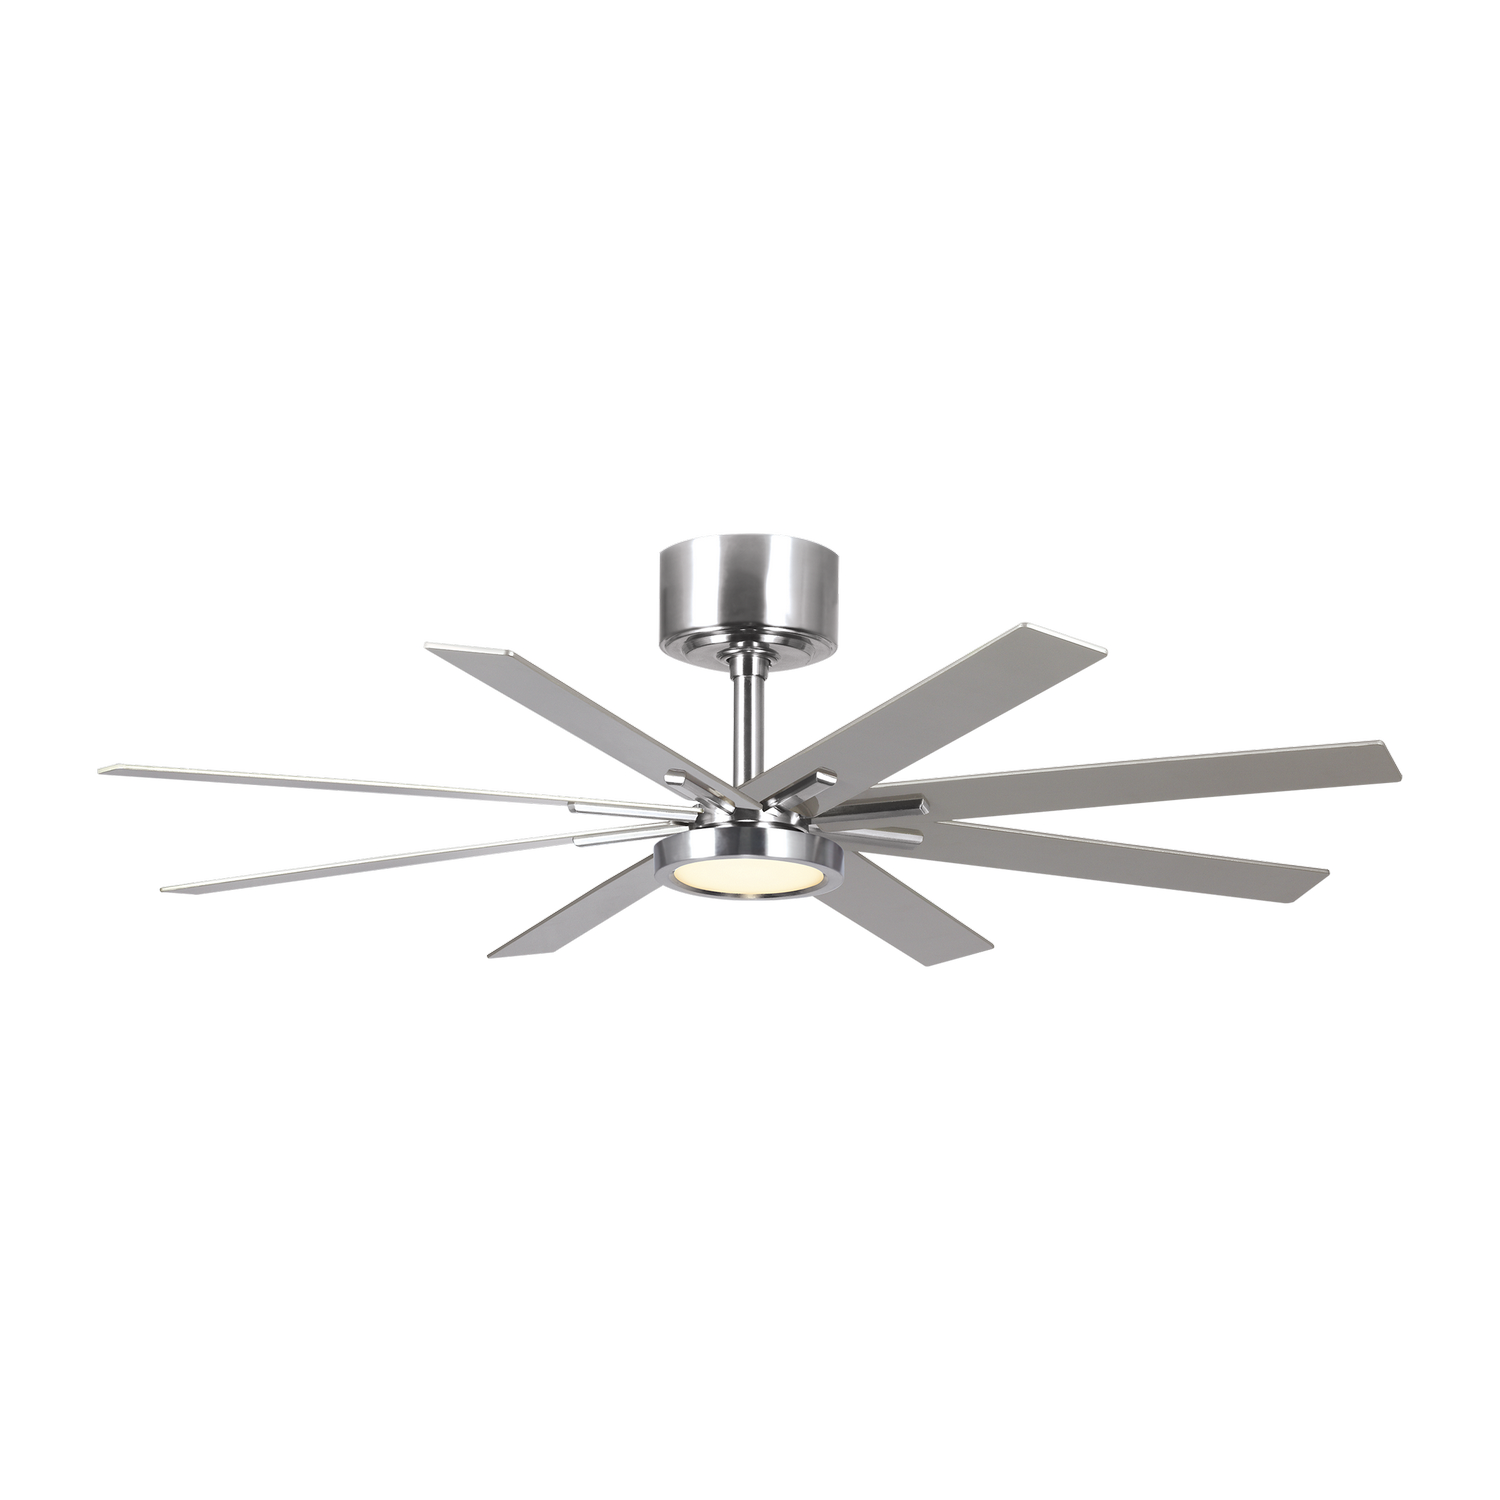 60 inchCeiling Fan from the Empire collection by Monte Carlo 8EER60BSD V1